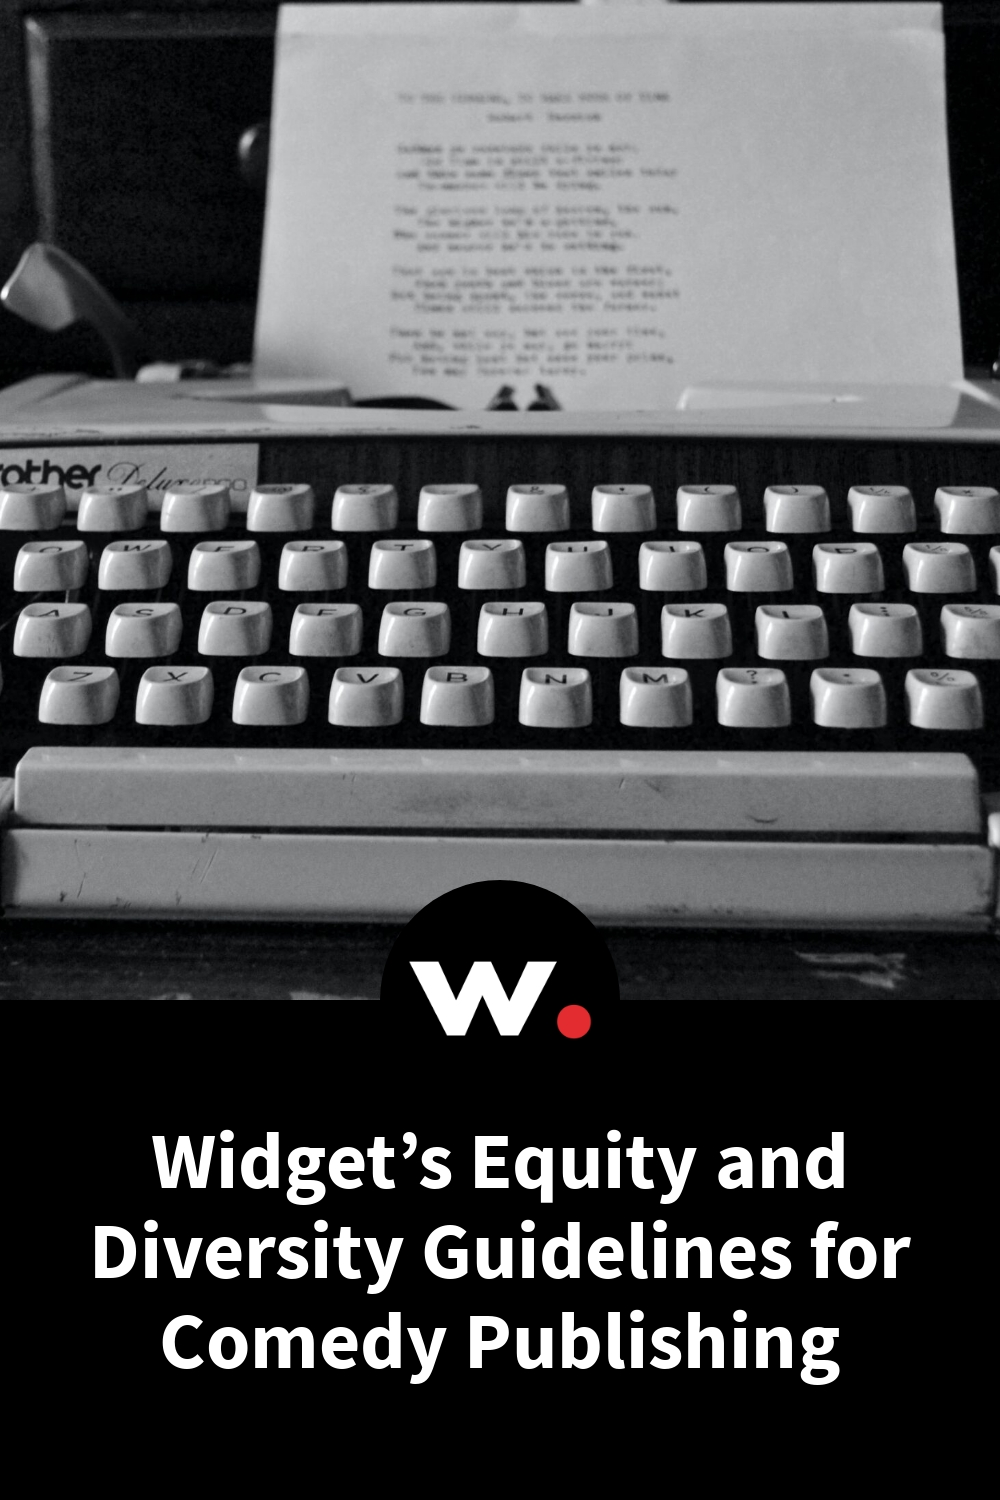 Widget's Equity and Diversity Guidelines for Comedy Publishing